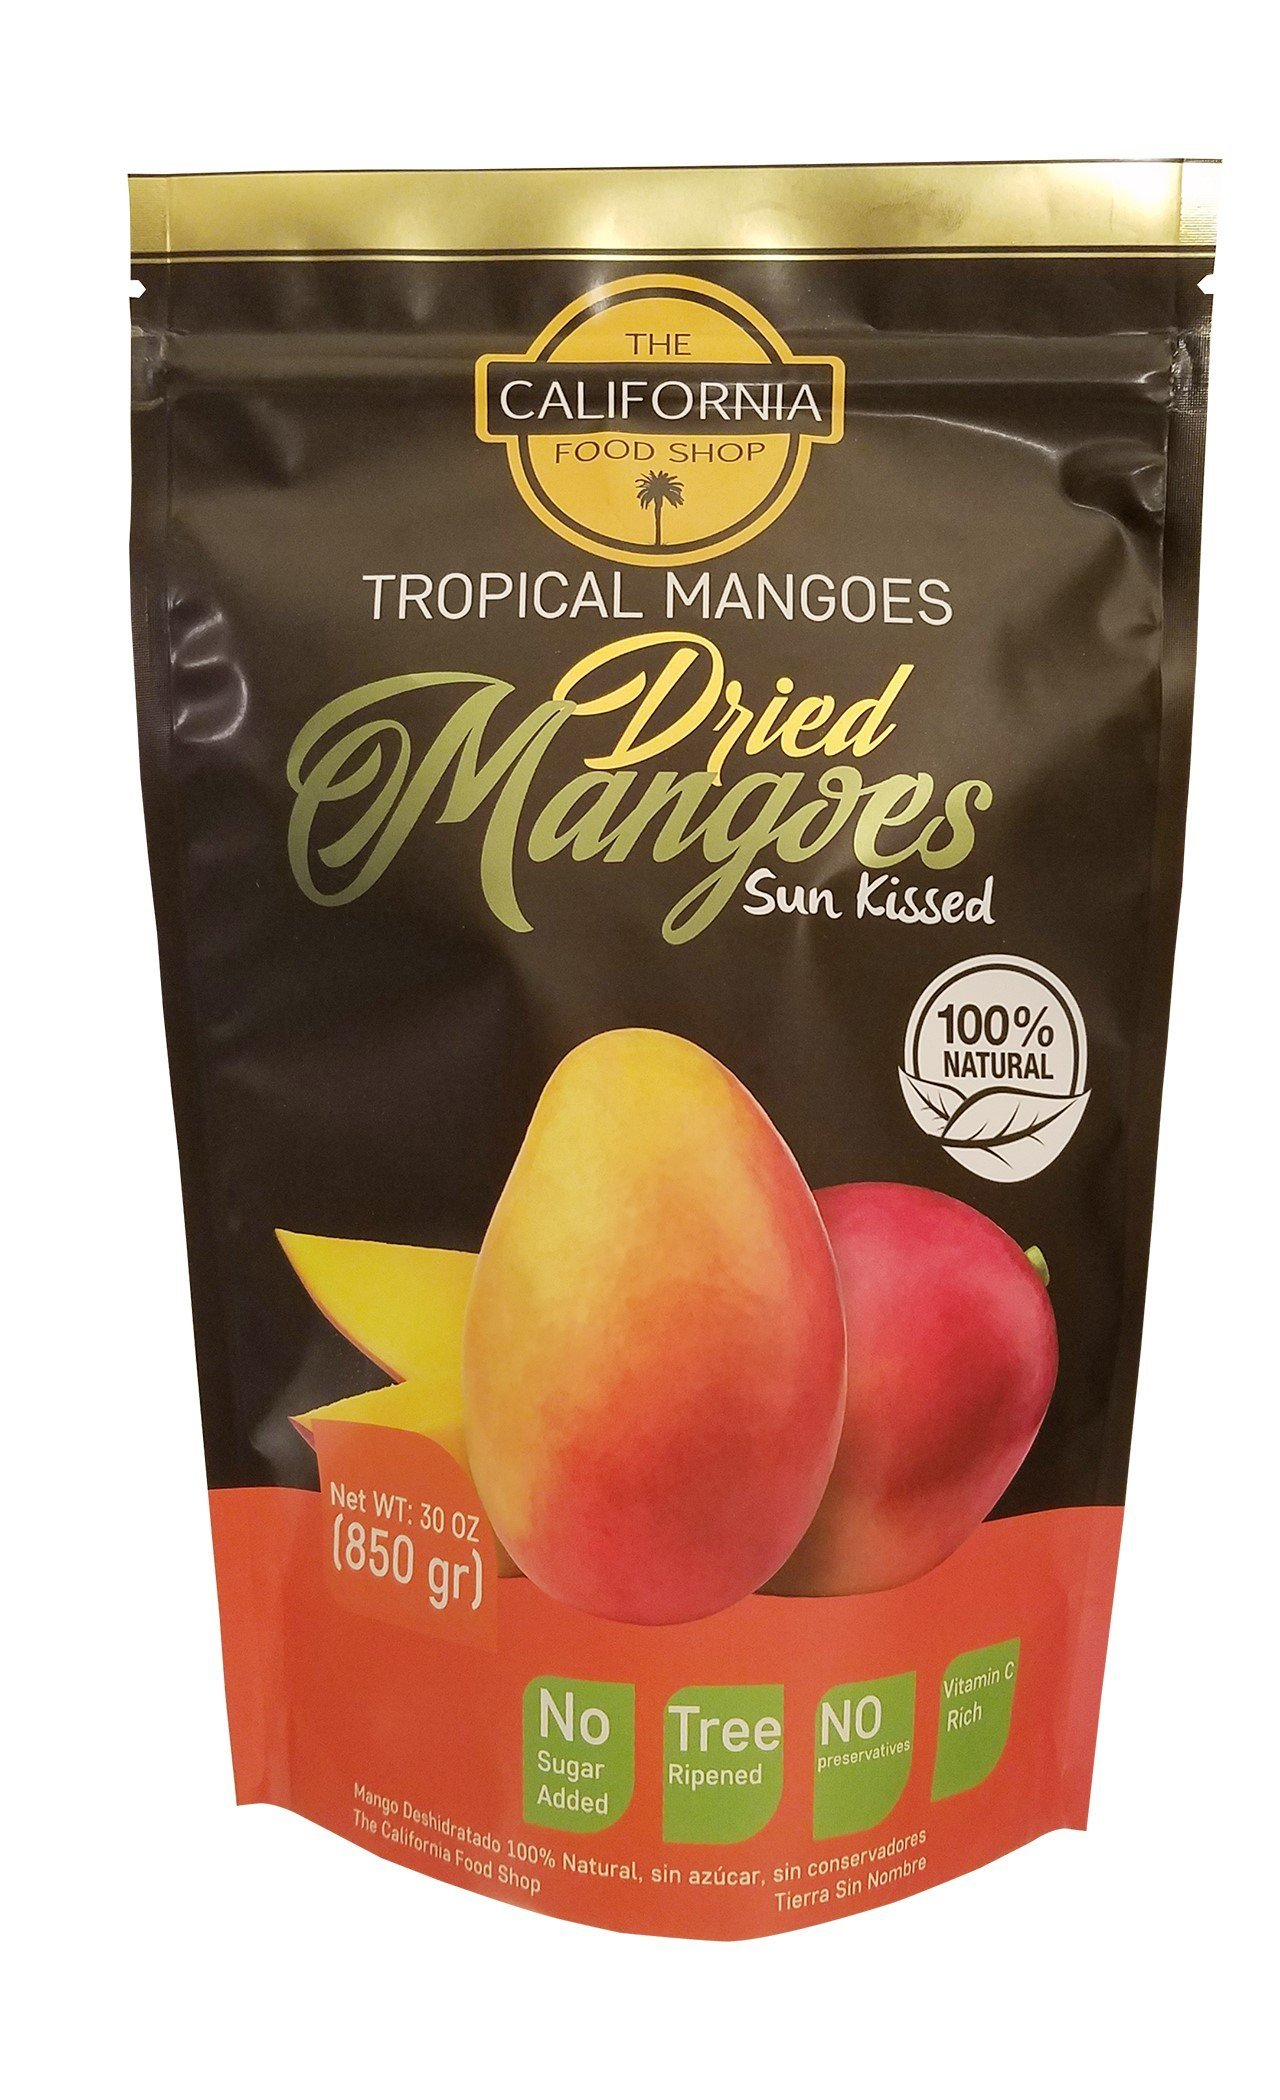 The California Food Shop All Natural Unsweetened Dried Mangoes 30 oz (850 gr)Pack Tropical Dried Mango Fruits Healthy and Delicious Snack No Added Sugar or Chemicals by The California Food Shop